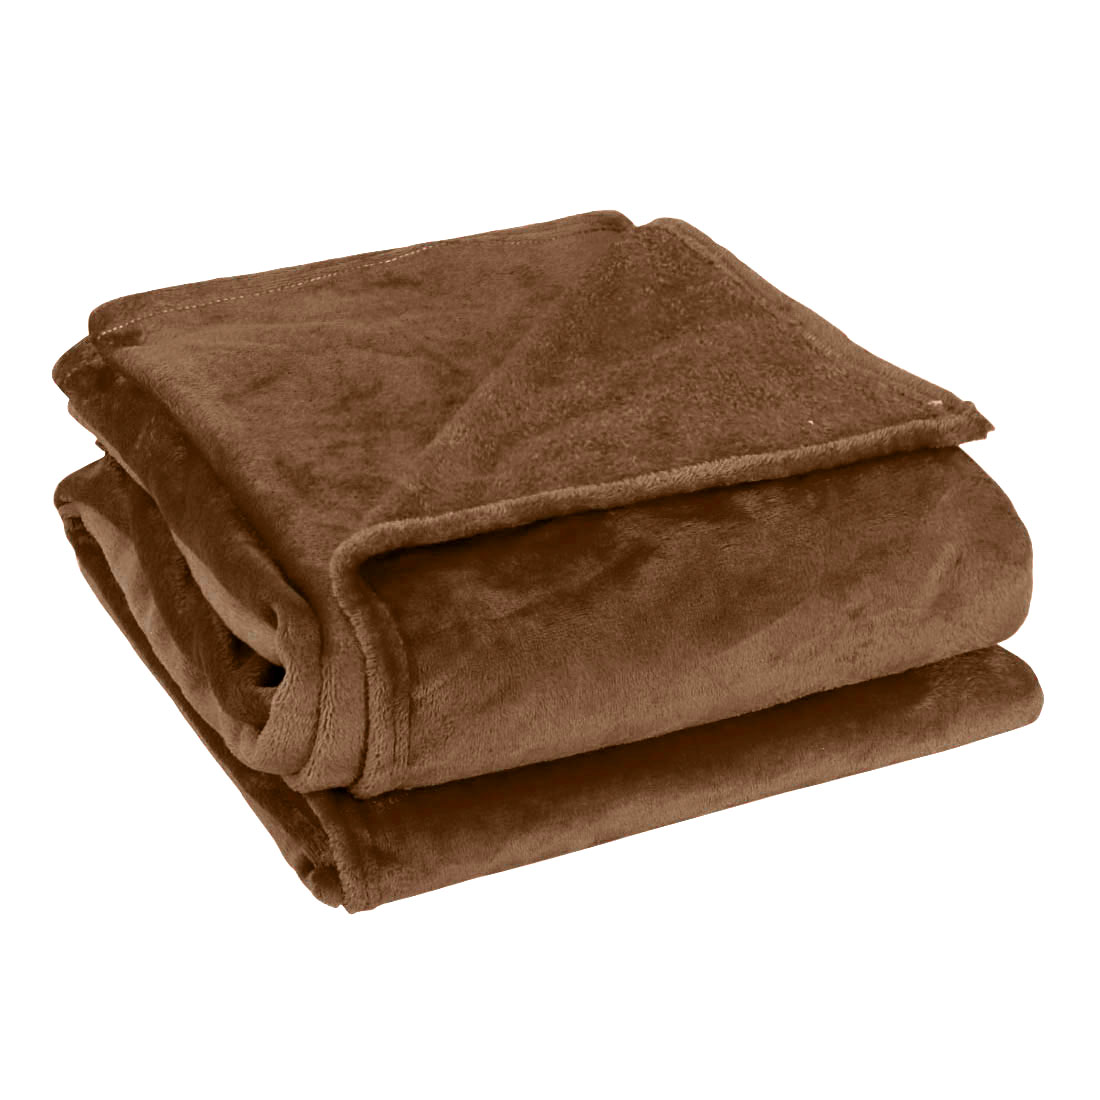 Full Size Home Bedroom Bed Sofa Warm Plush Couch Throws Blanket Soft Chocolate Color 180 x 200cm